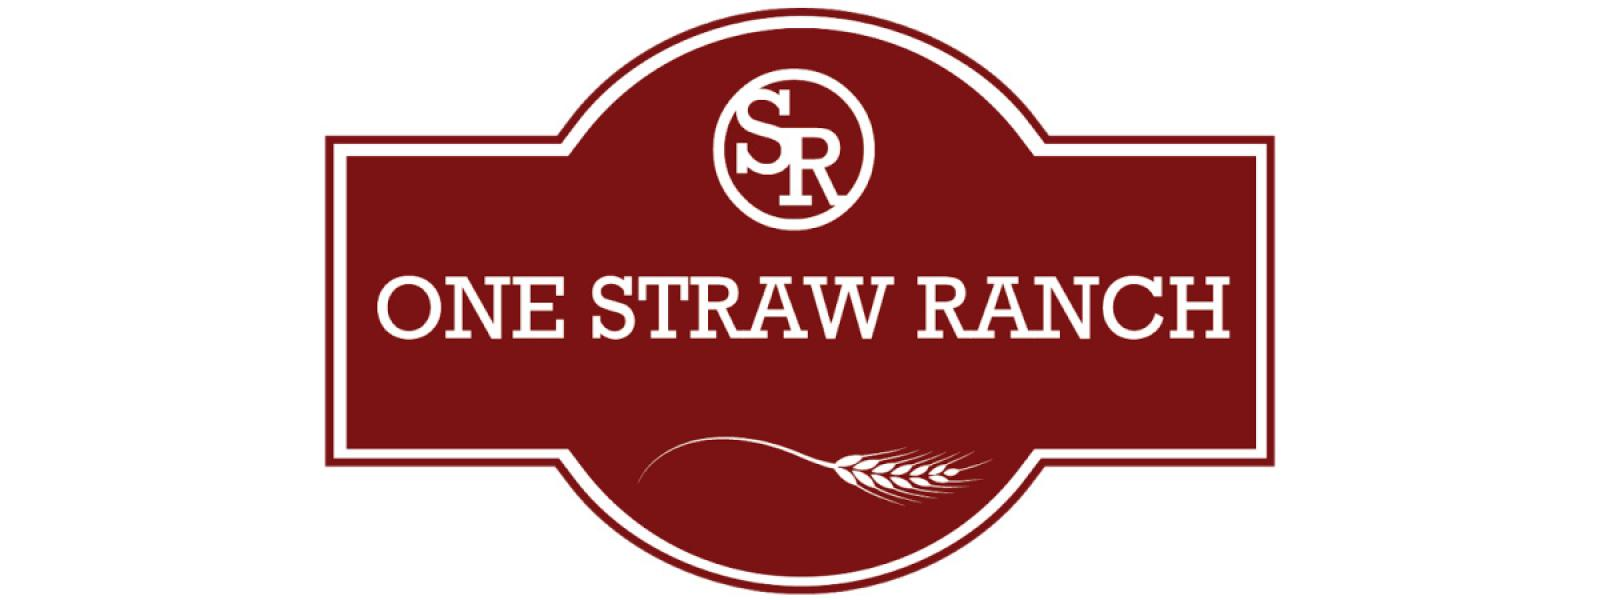 One Straw Ranch